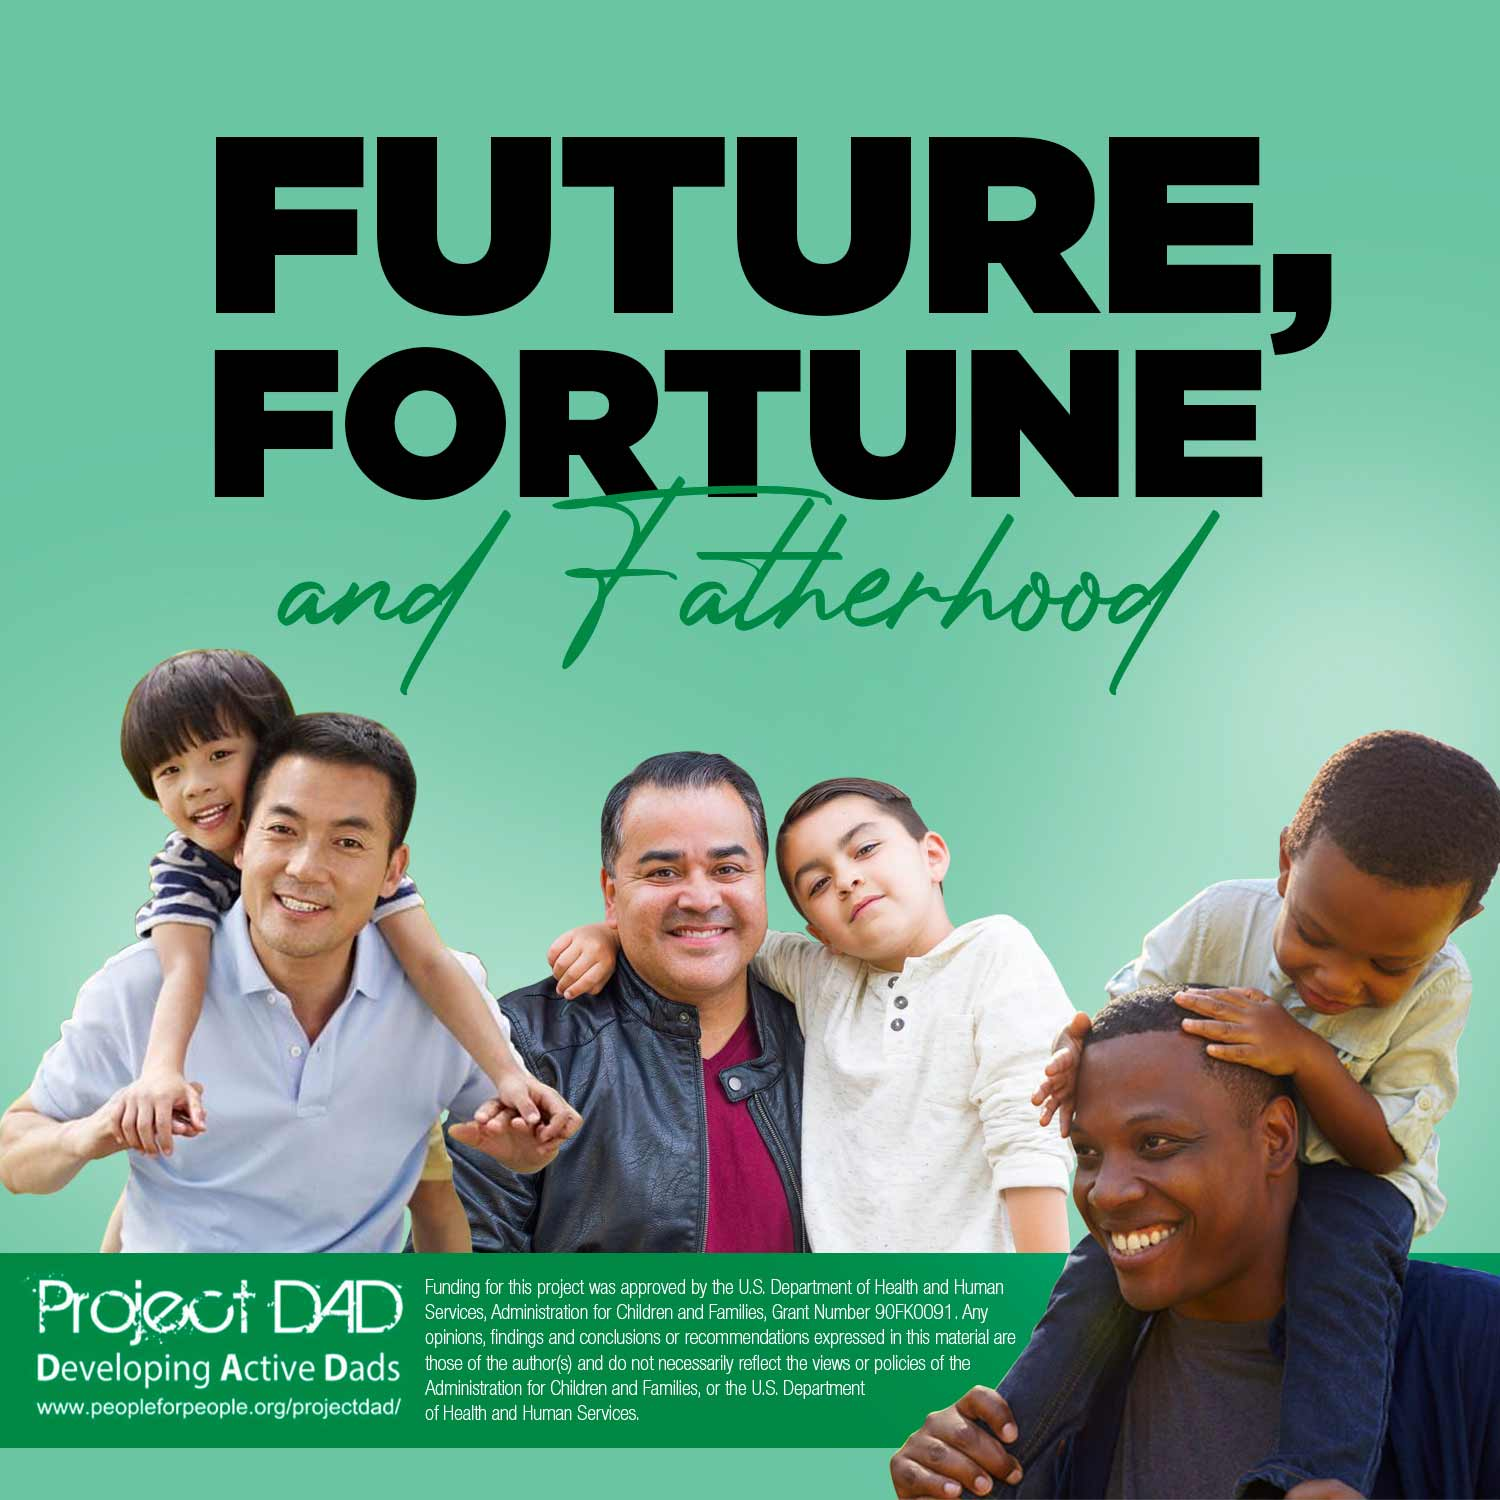 Welcome to Future, Fortune and Fatherhood, brought to you by Project D.A.D.